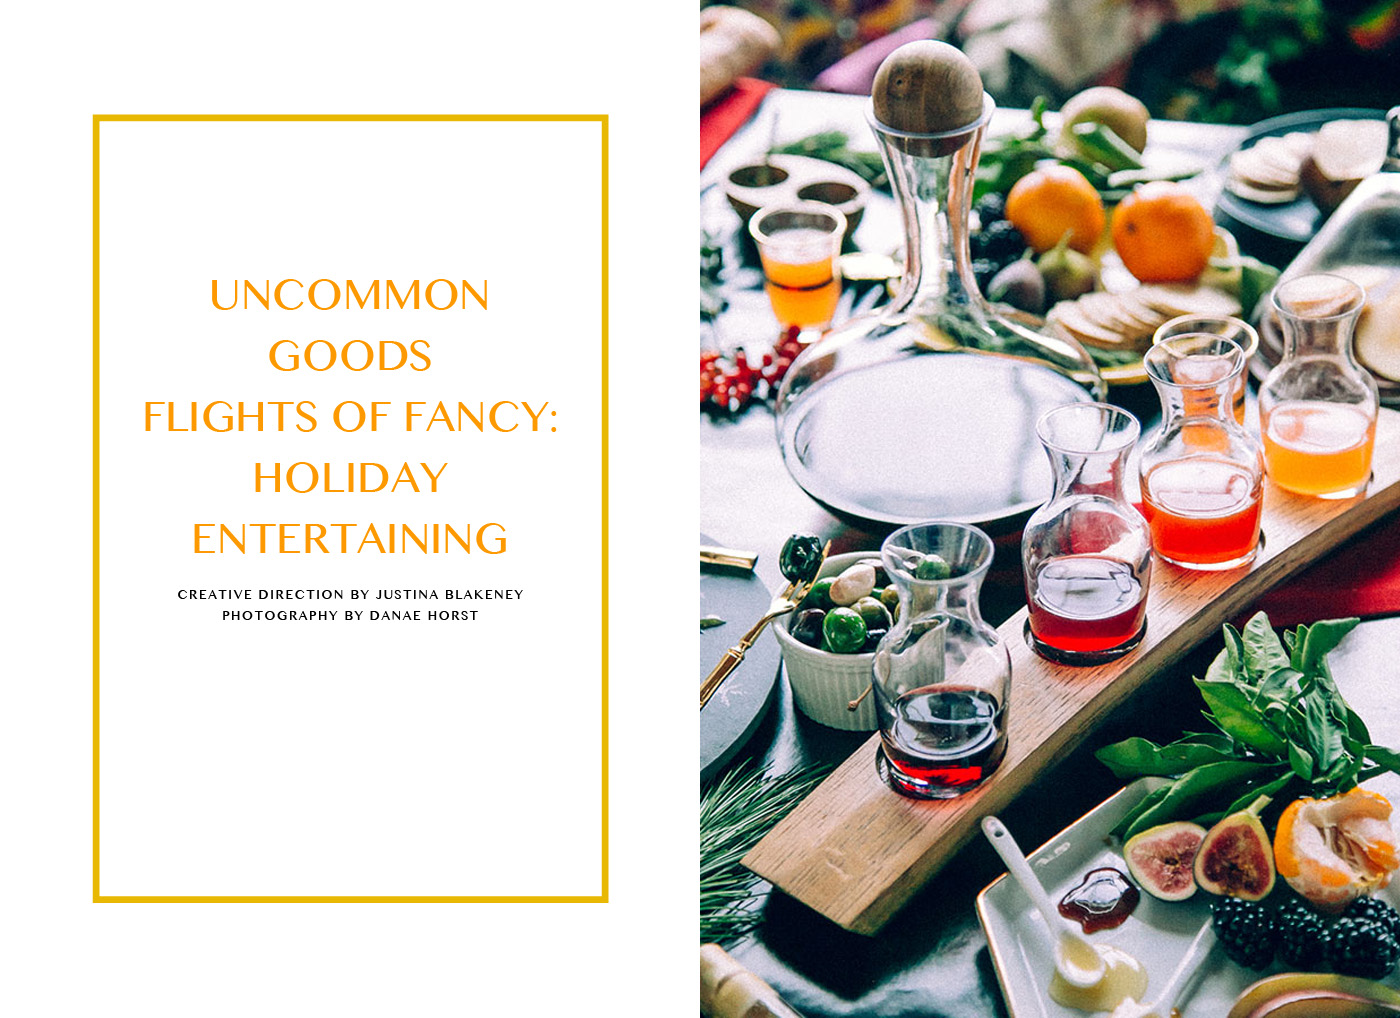 Uncommon Goods slide 1.jpg